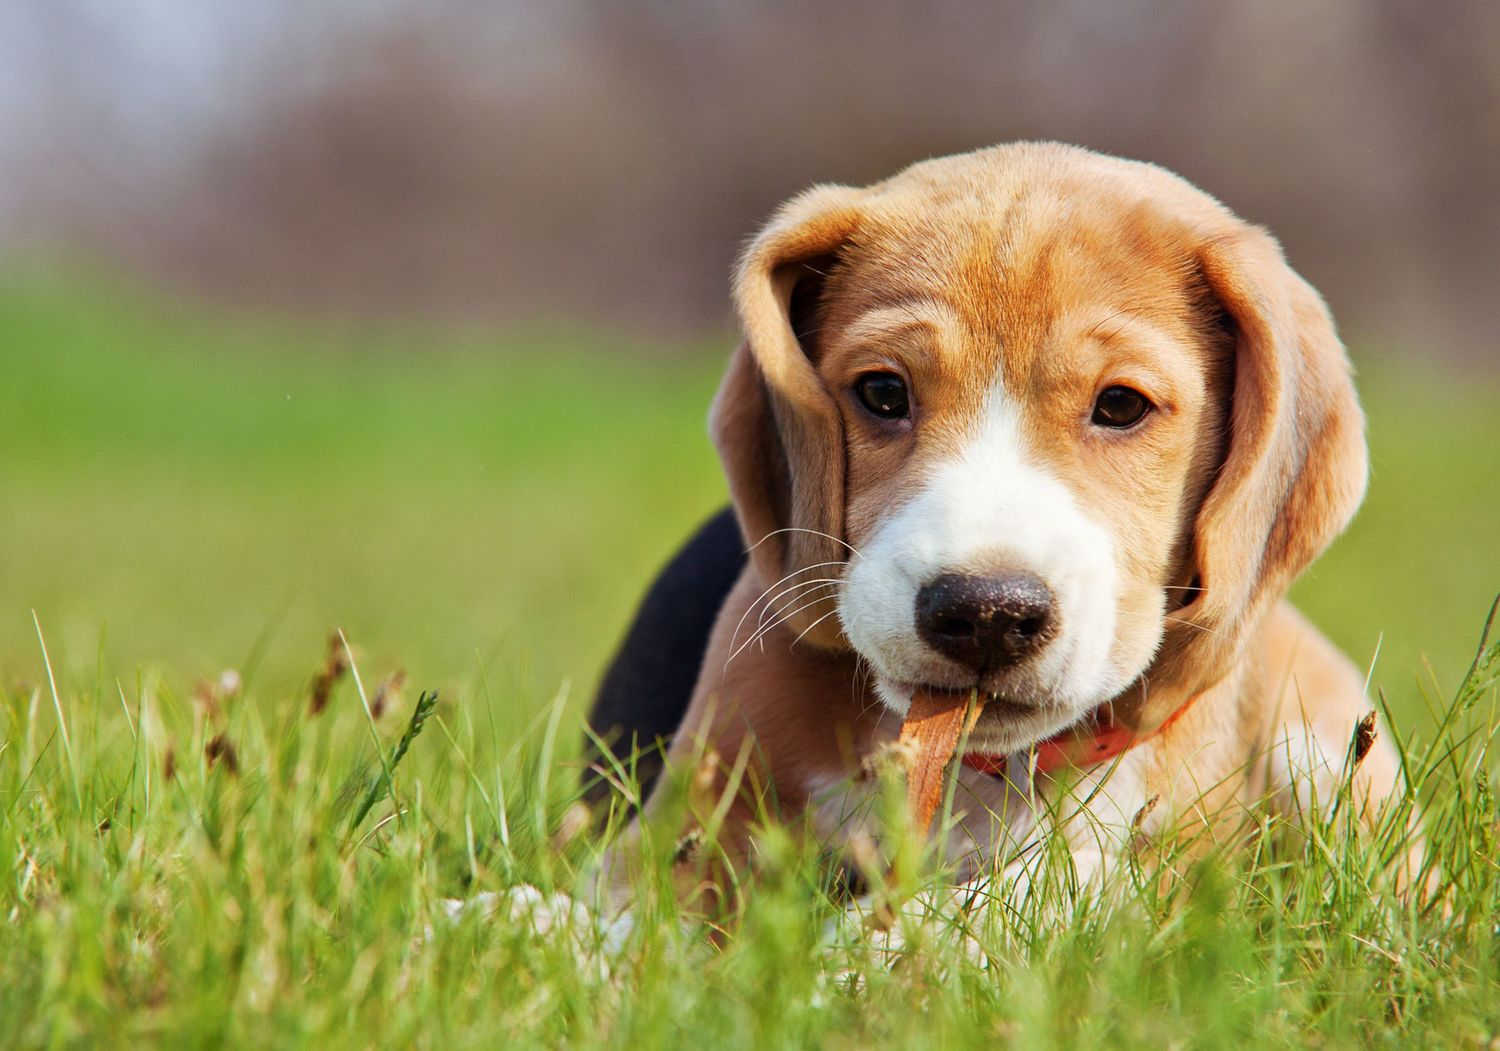 A Short Discussion on Low Cost Pet Insurance